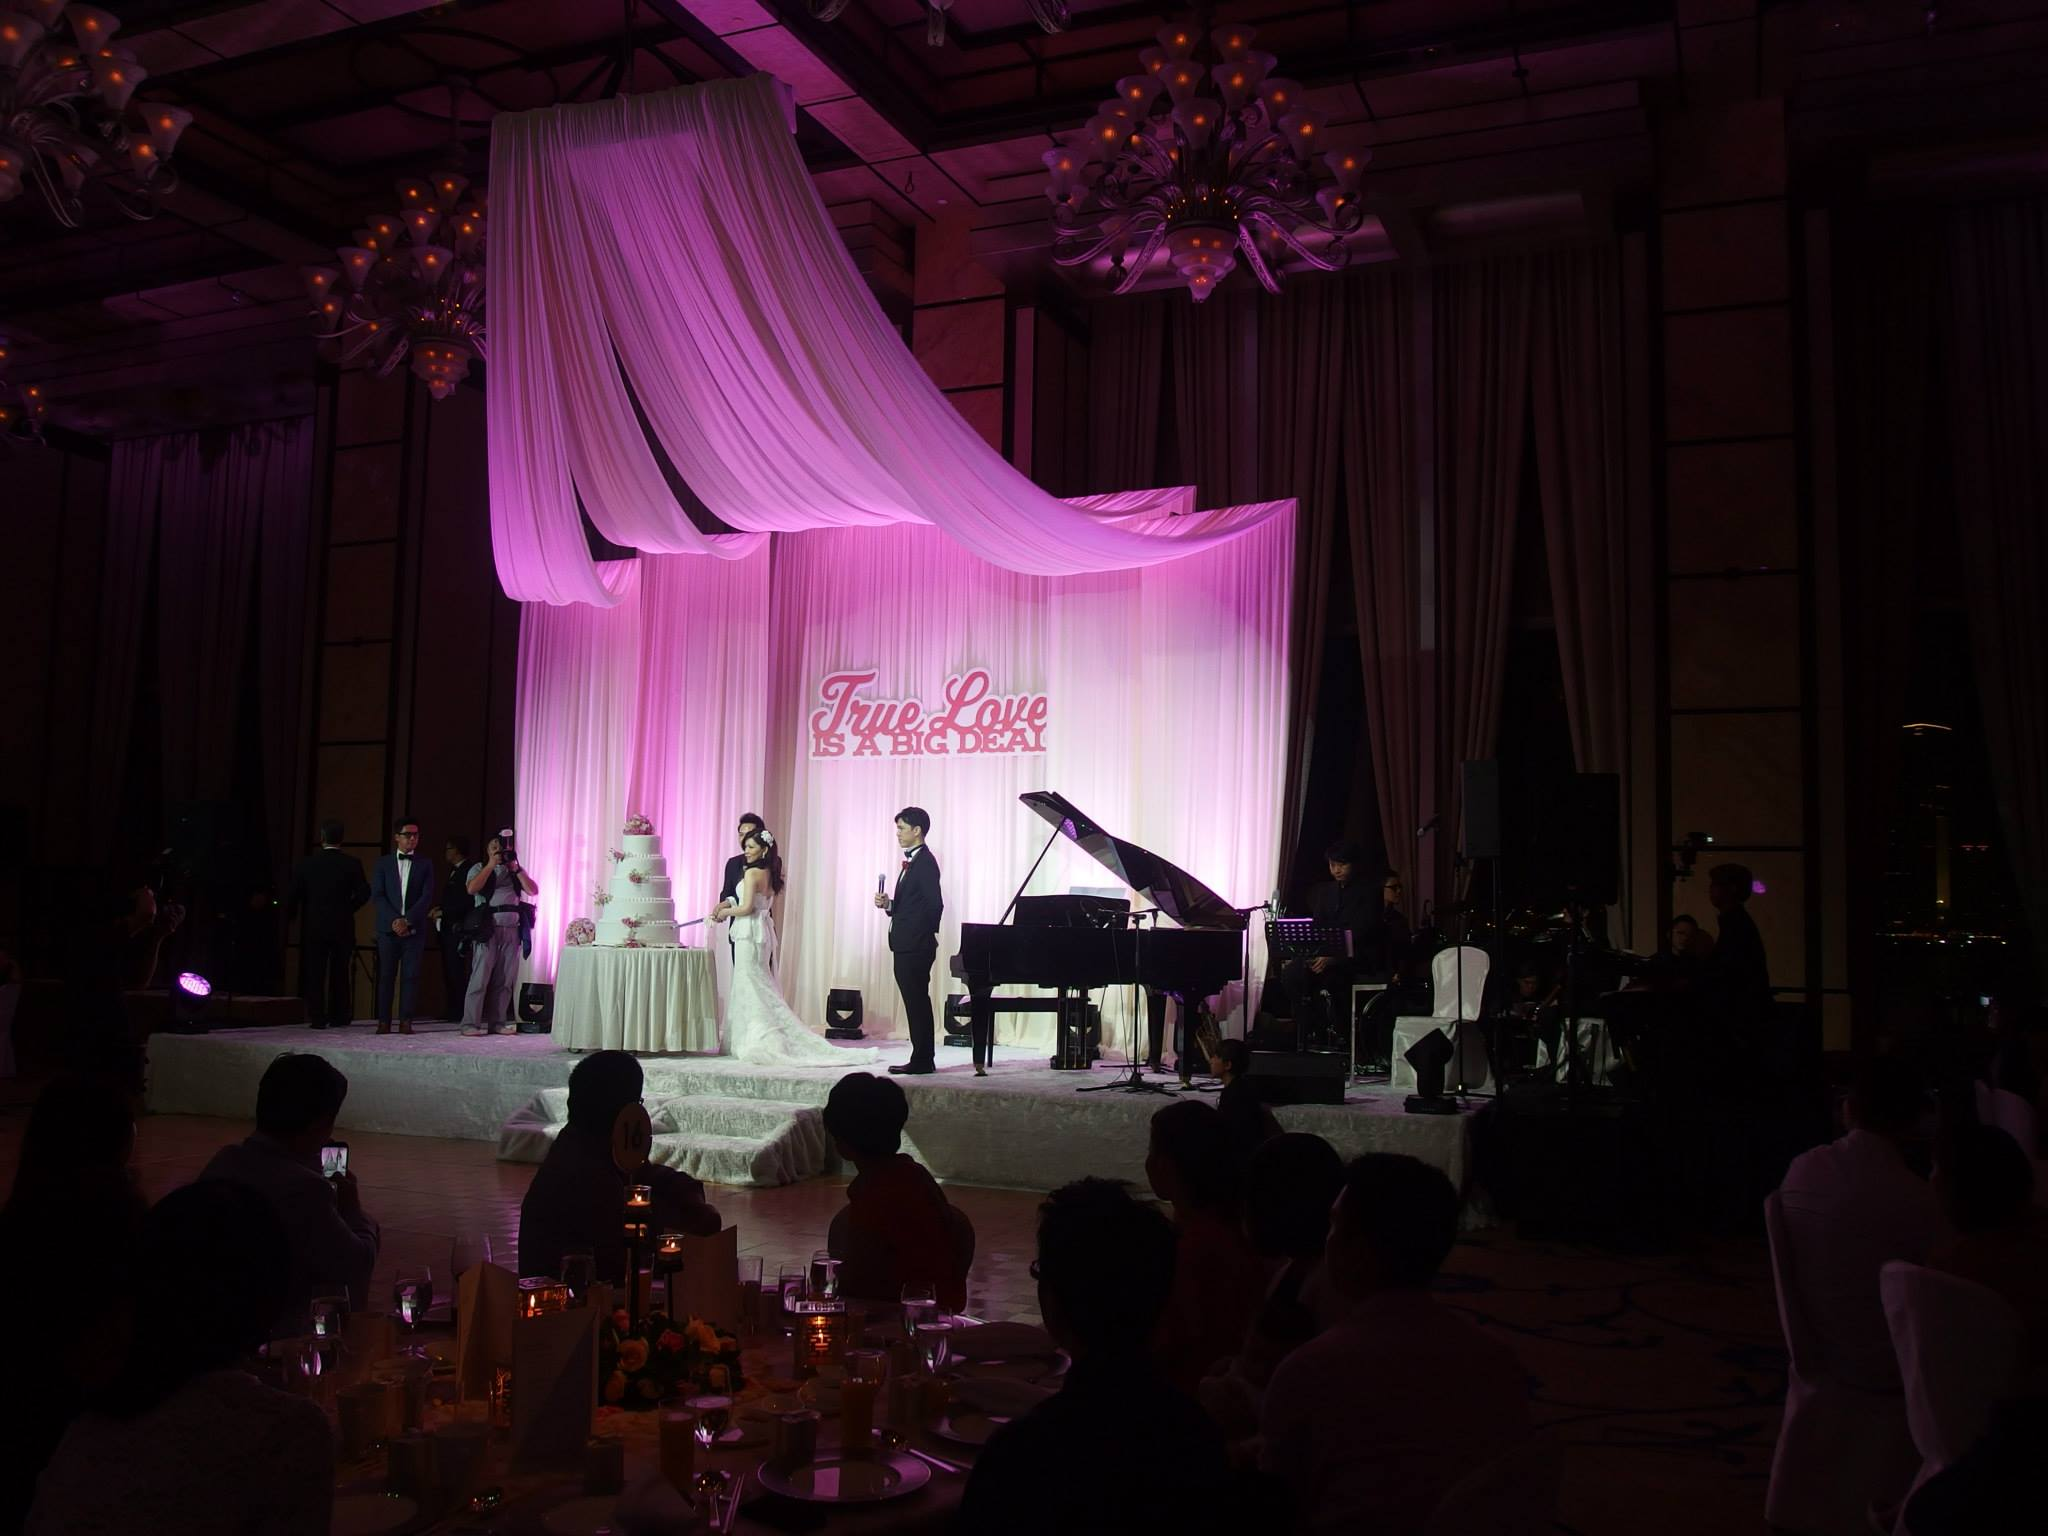 Unison Production Live Music band performance - Wedding Ceremony at Four Seasons Hotel Hong Kong